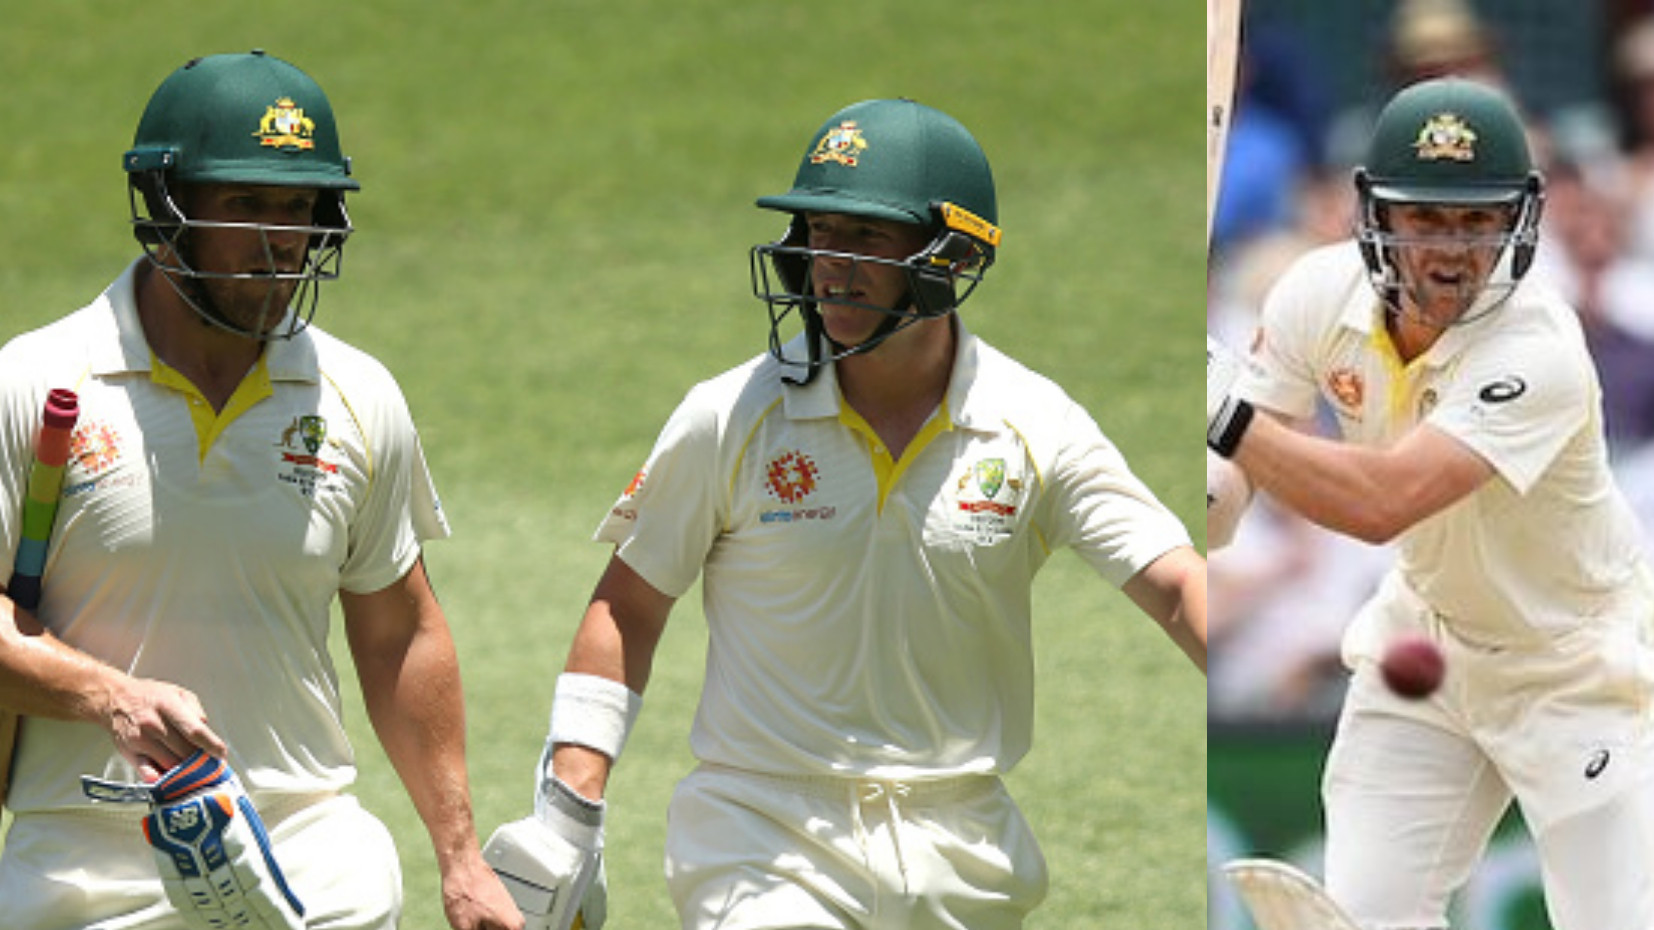 AUS v IND 2018-19: 2nd Test, Day 1 – Harris, Finch and Head fifties take Australia to 277/6 on Perth green top